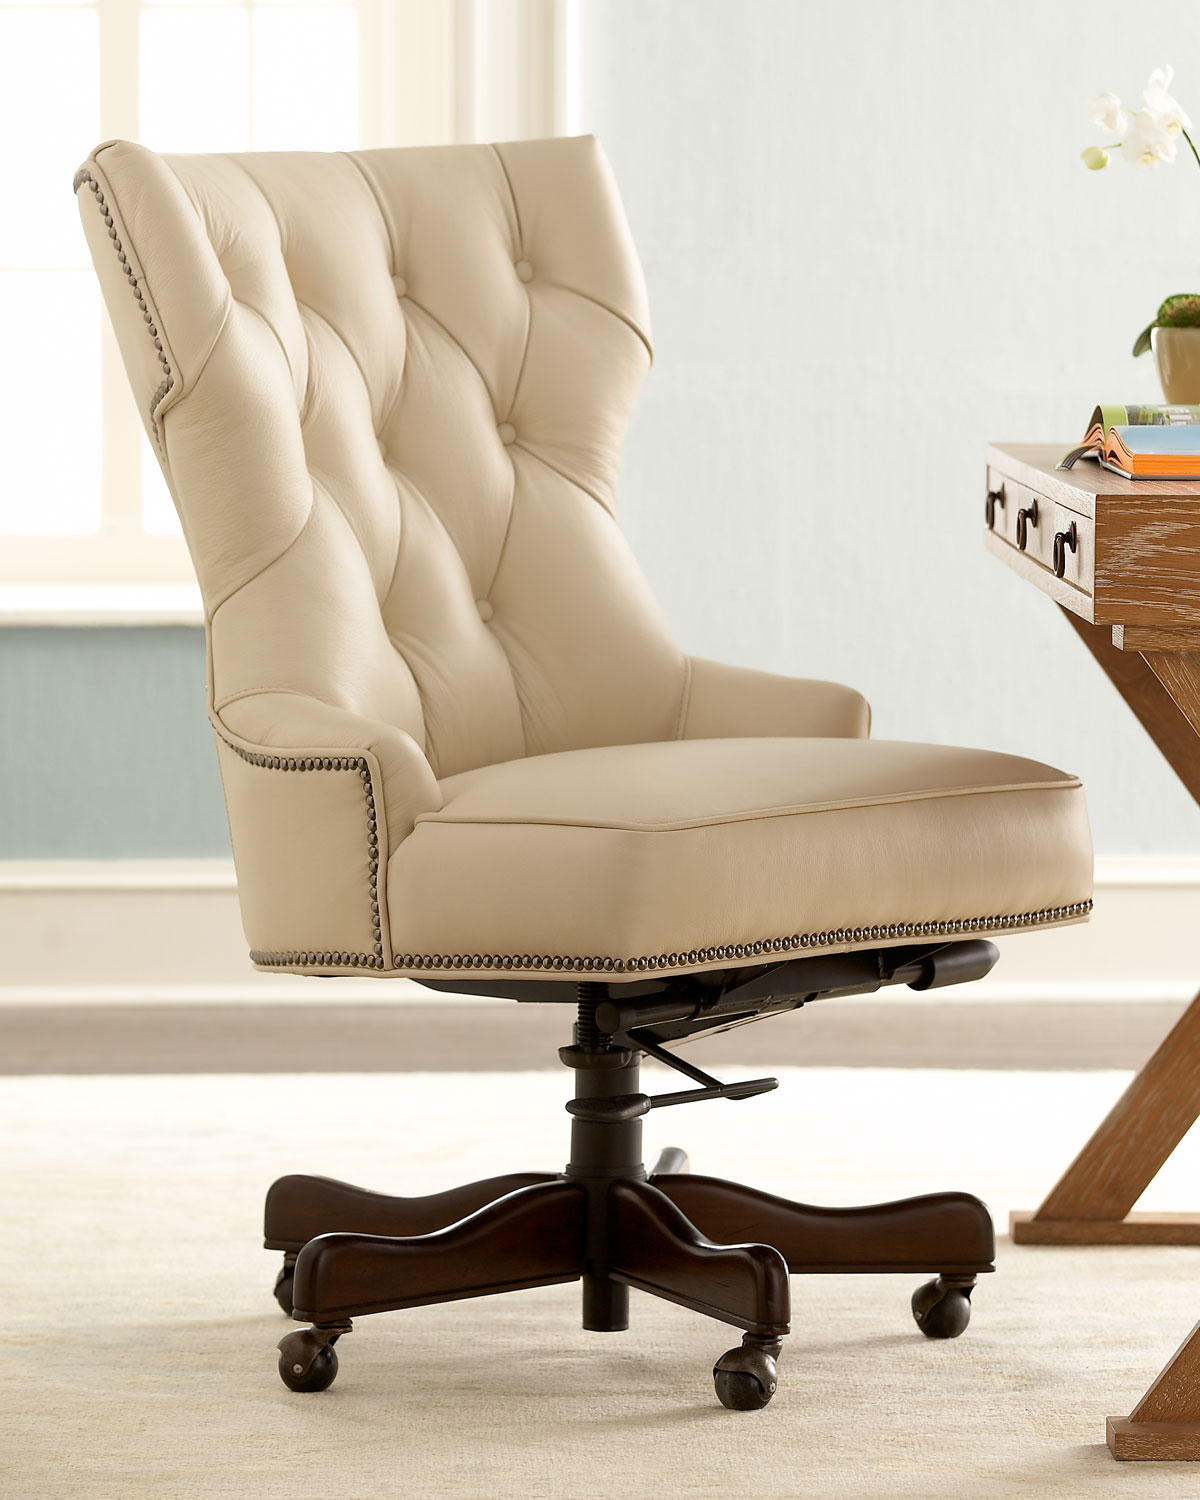 Office Furniture: How To Decorate An Office At Work With Leather Chairs